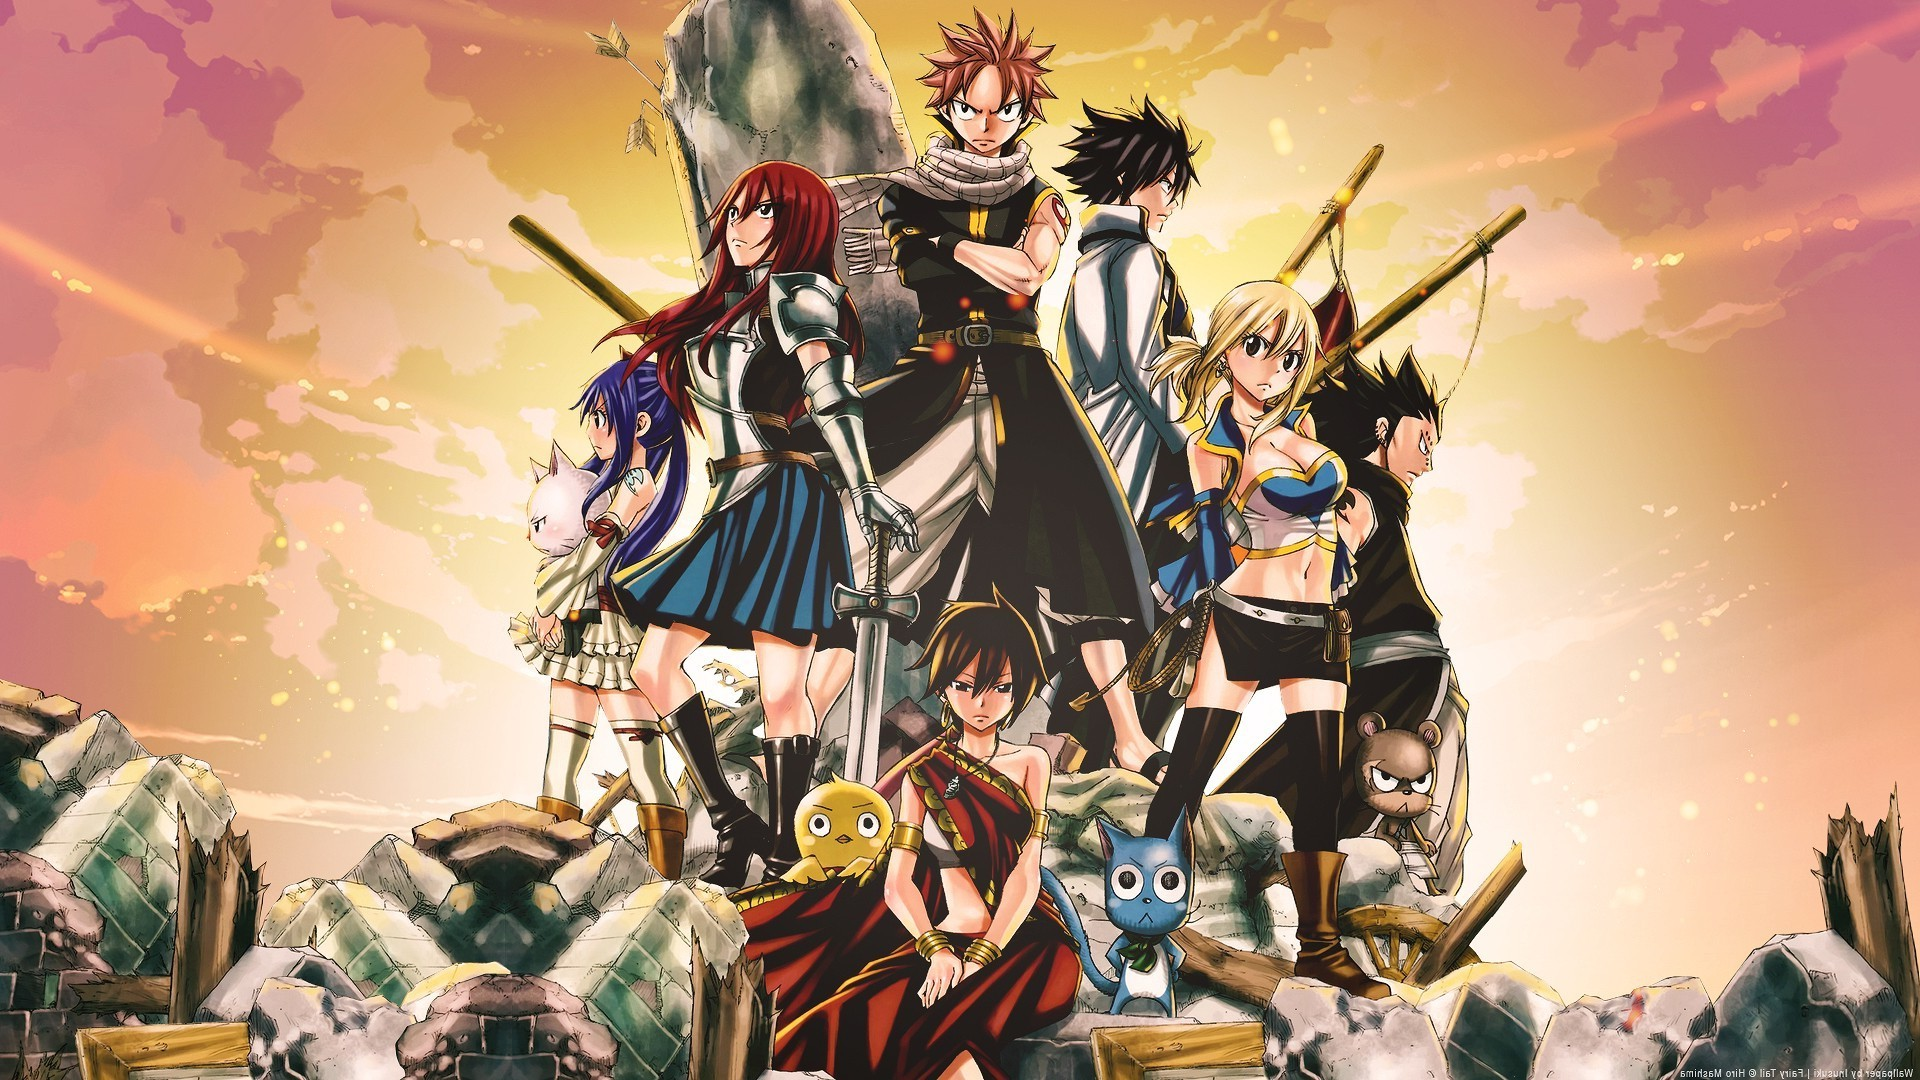 1920x1080 Fairy Tail 7 Dragon Slayer Wallpapers Background As Wallpaper HD